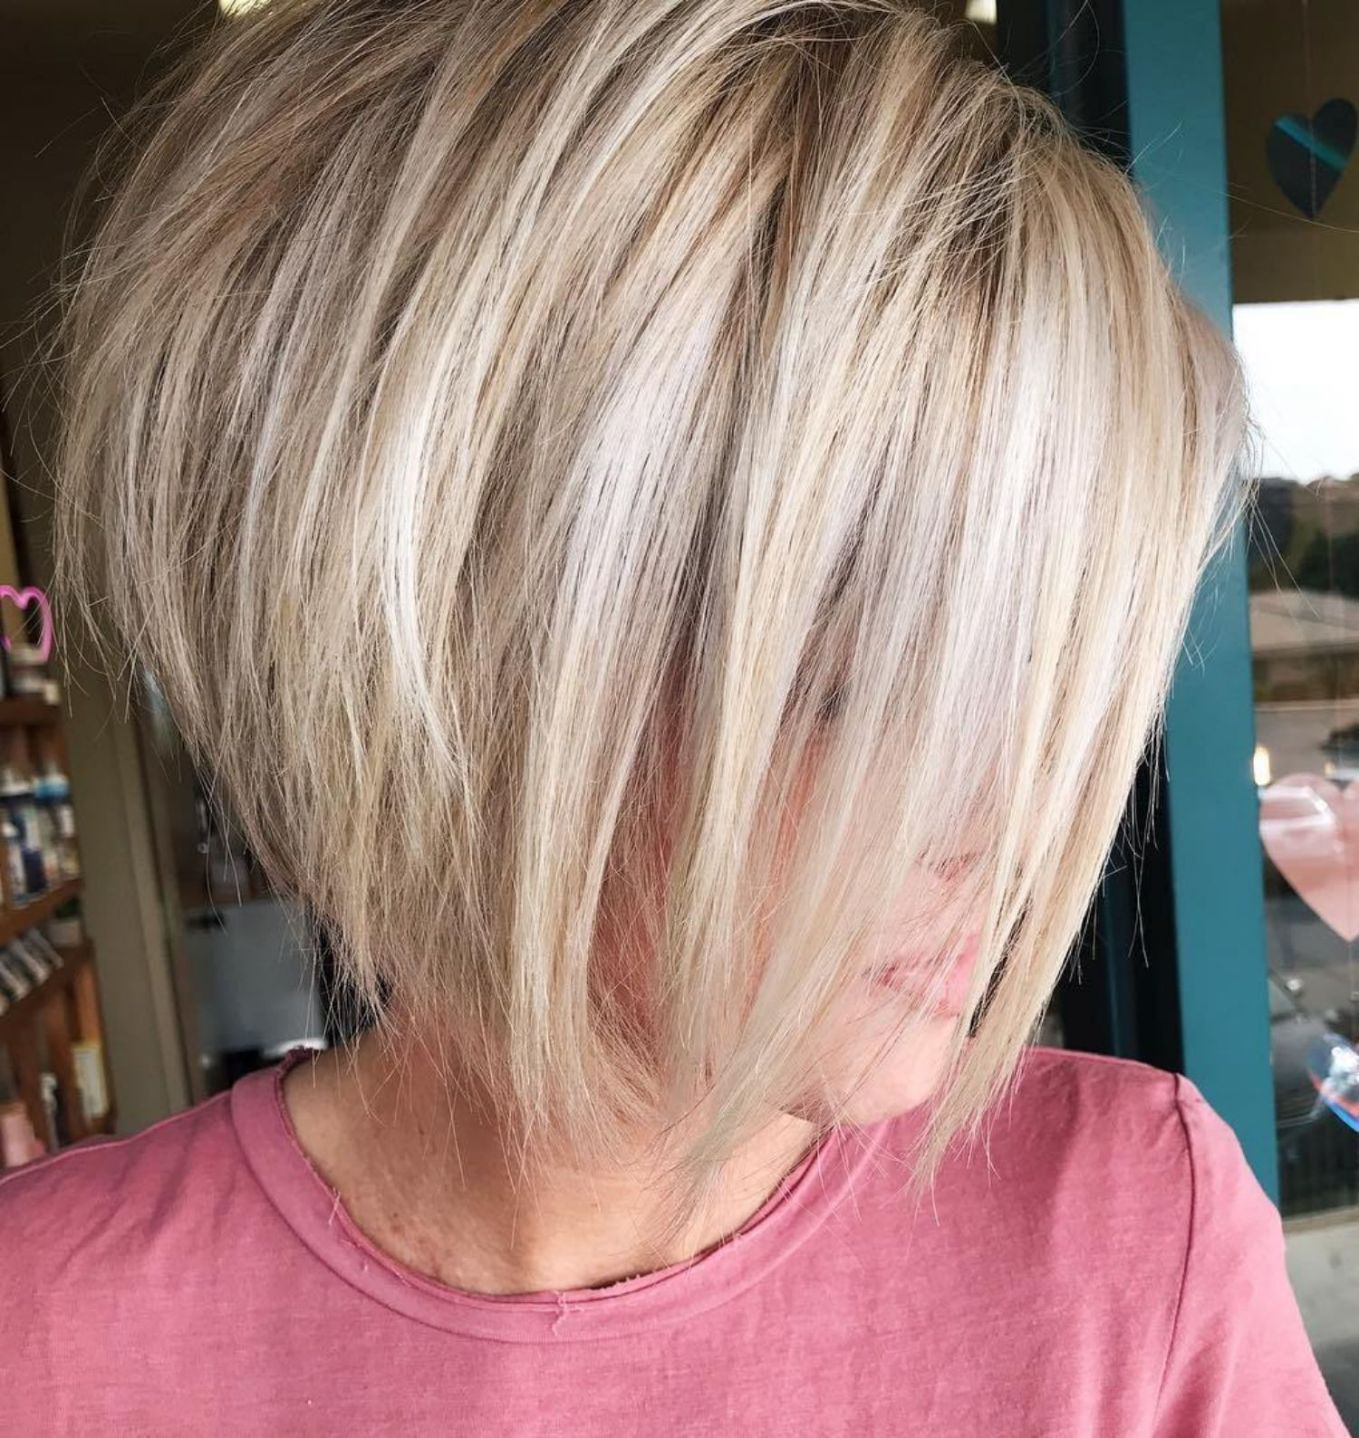 70 Fabulous Choppy Bob Hairstyles Thick Hair Styles Choppy Bob Hairstyles Short Hairstyles For Thick Hair